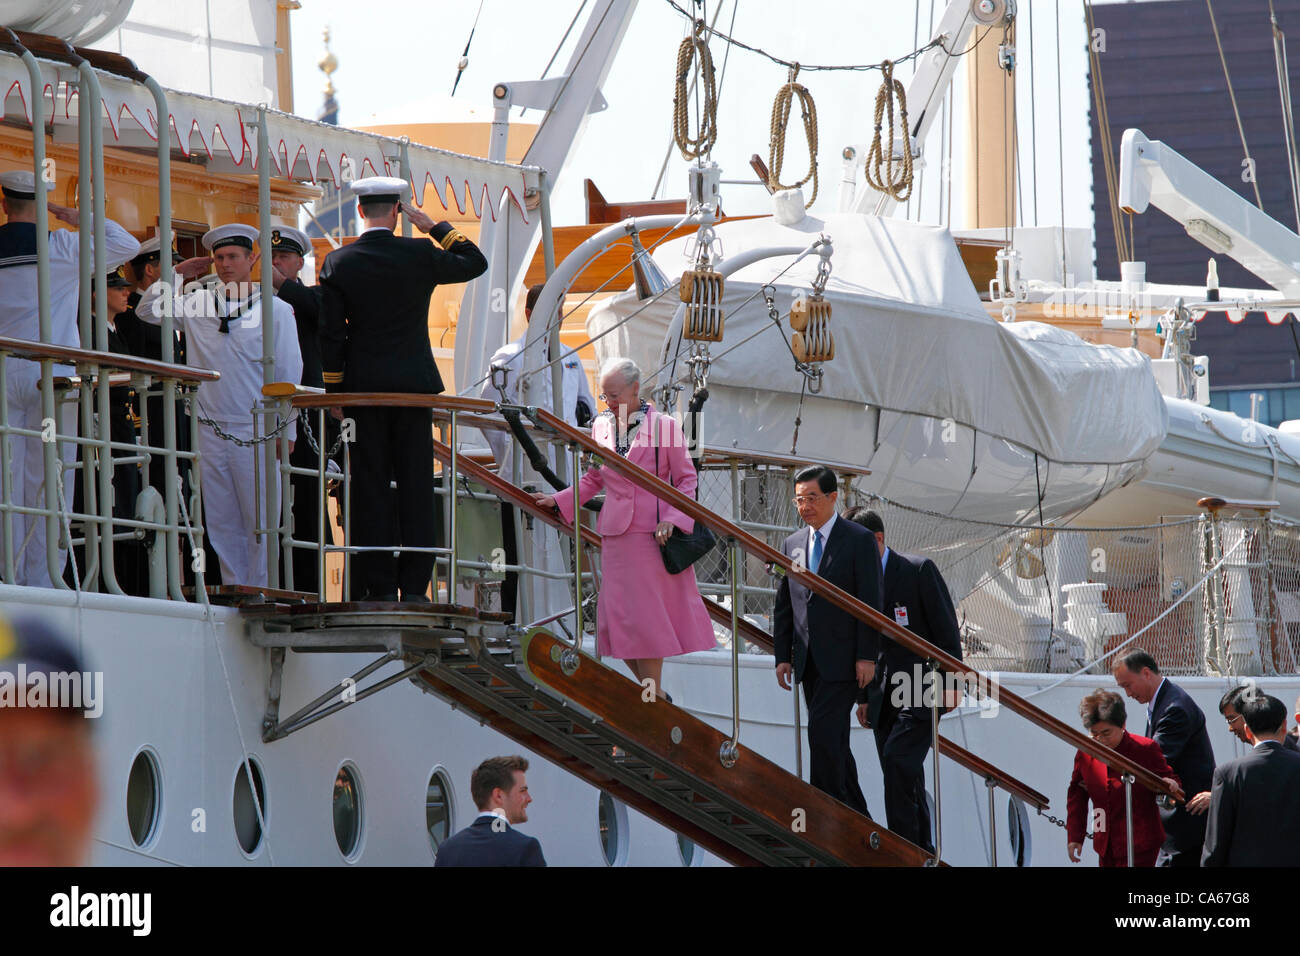 June Friday 15, 2012 - Queen Margrethe II of Denmark and the Chinese President Hu Jintao and his wife boarding the - Stock Image